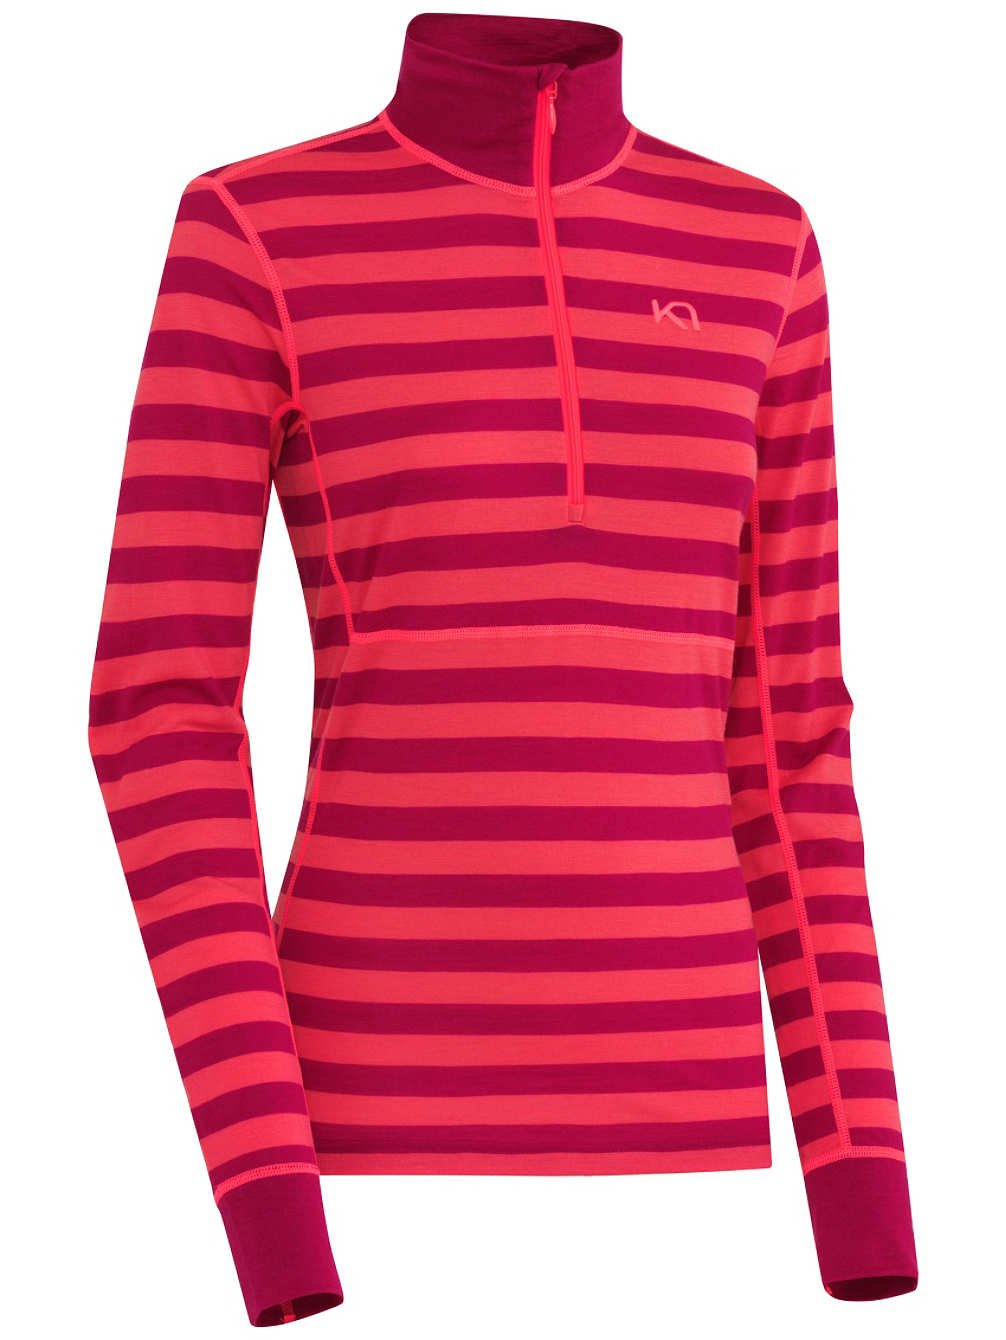 Kari Traa Ulla Half-Zip Top -Women's Ruby, M by Kari Traa